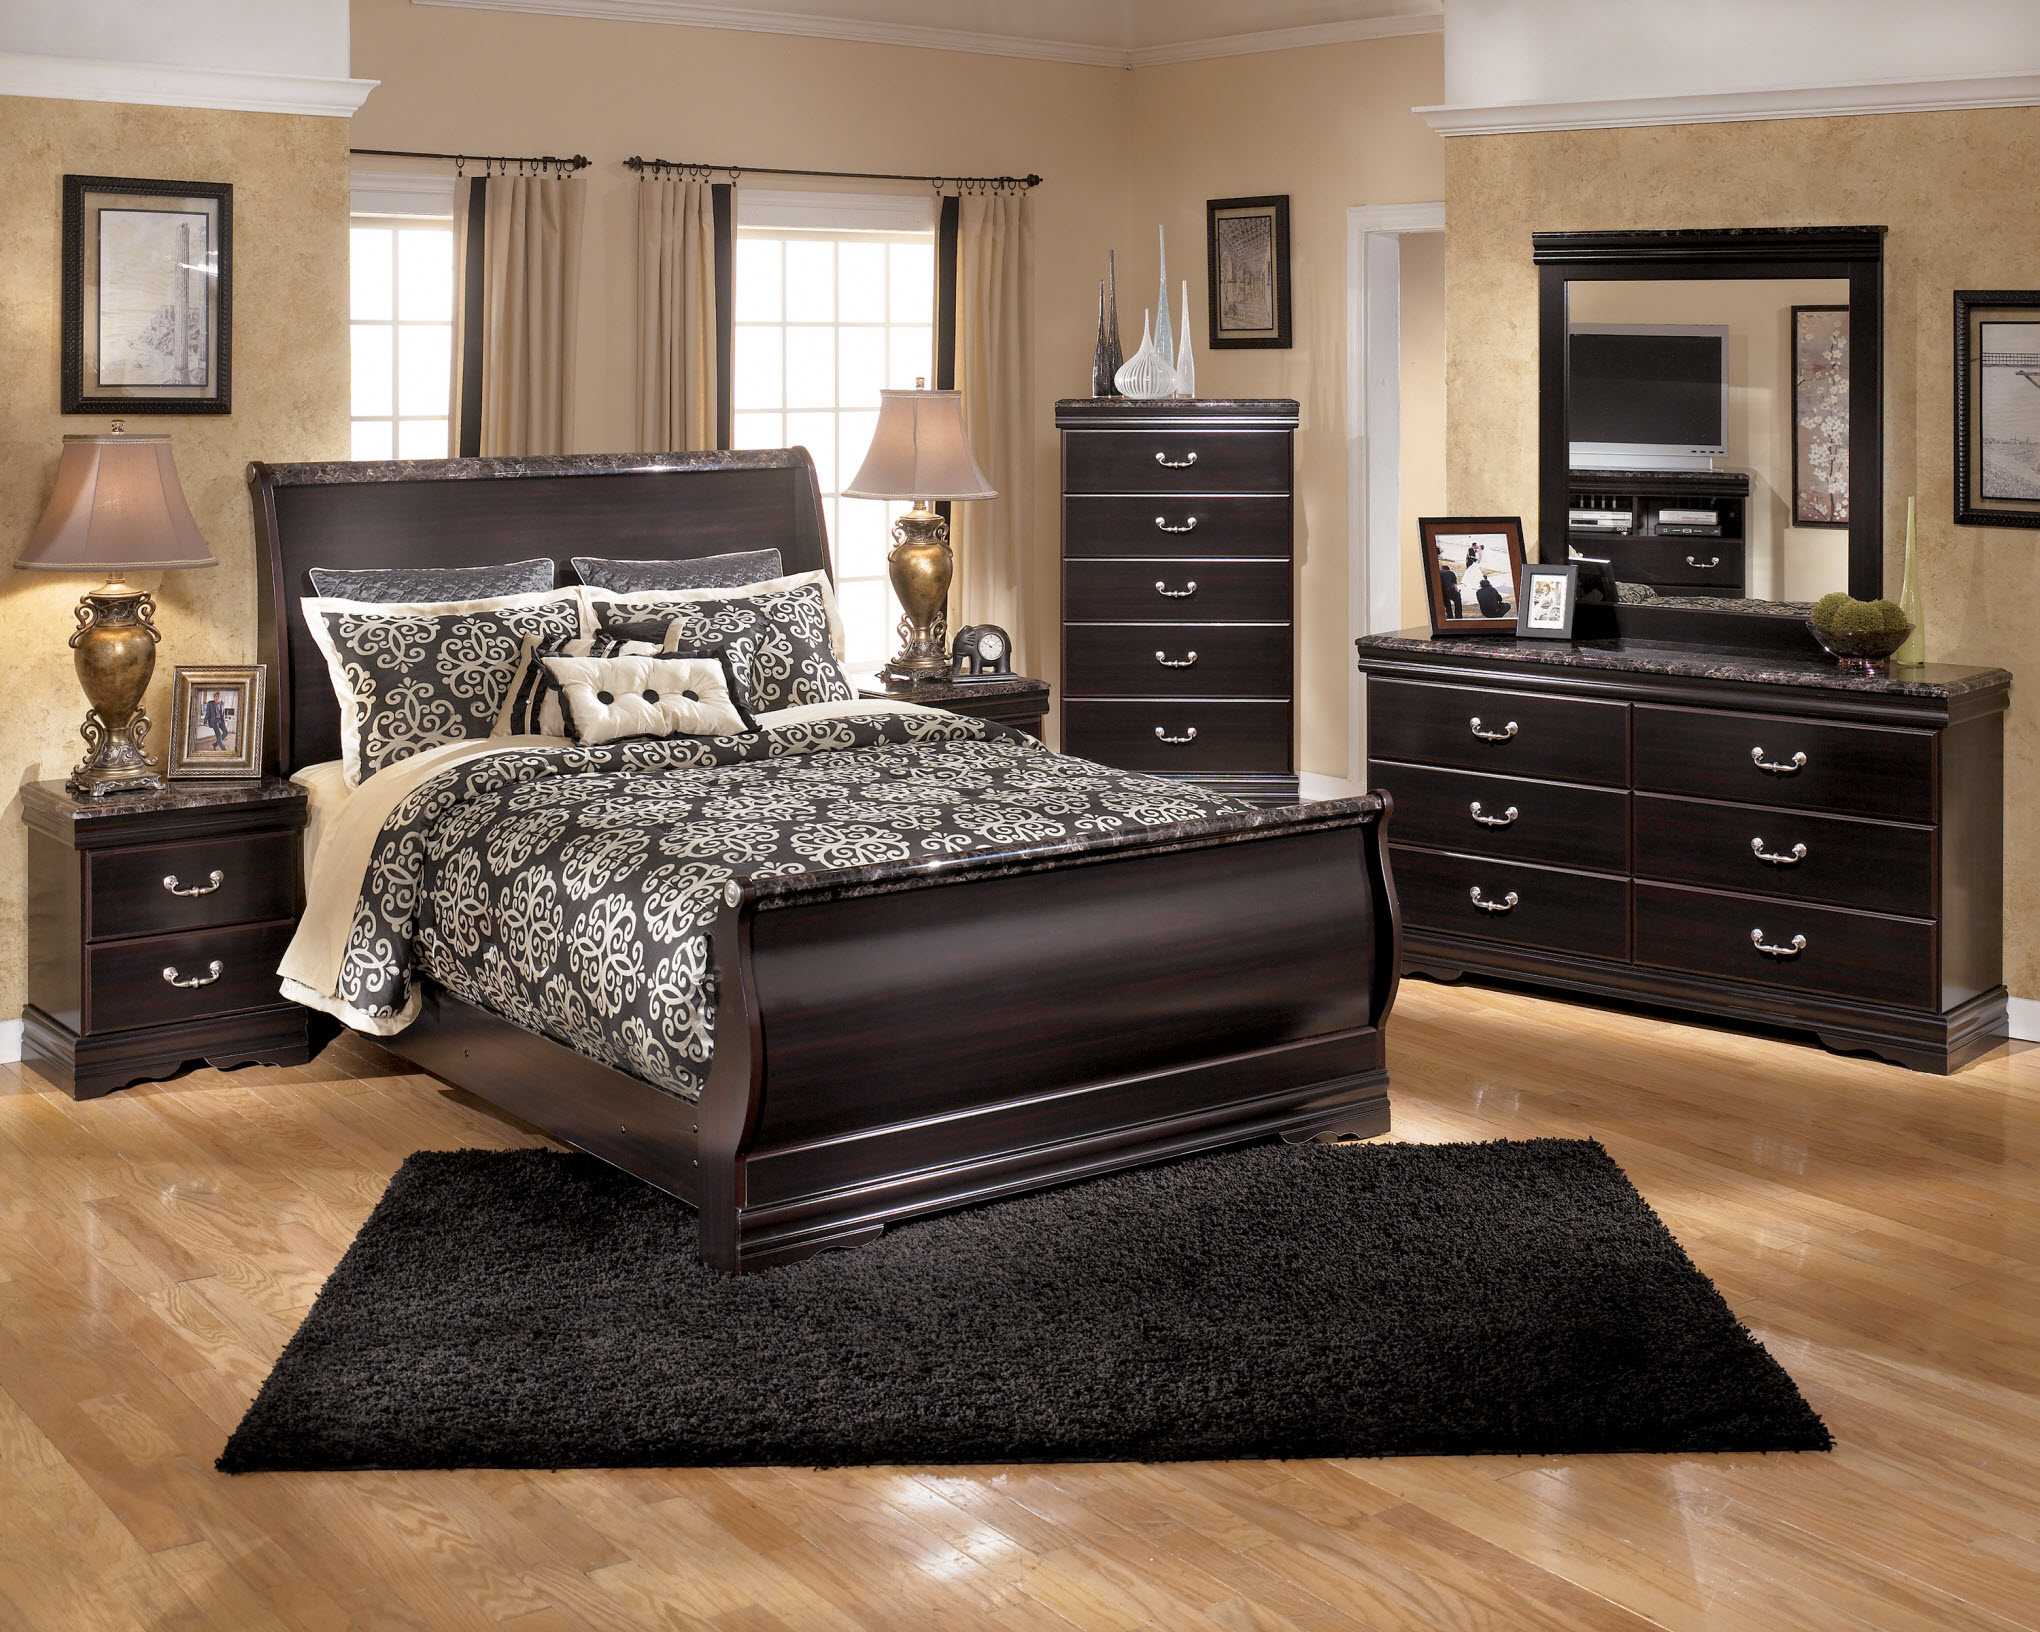 Impressive Bedroom Set Furniture Collection